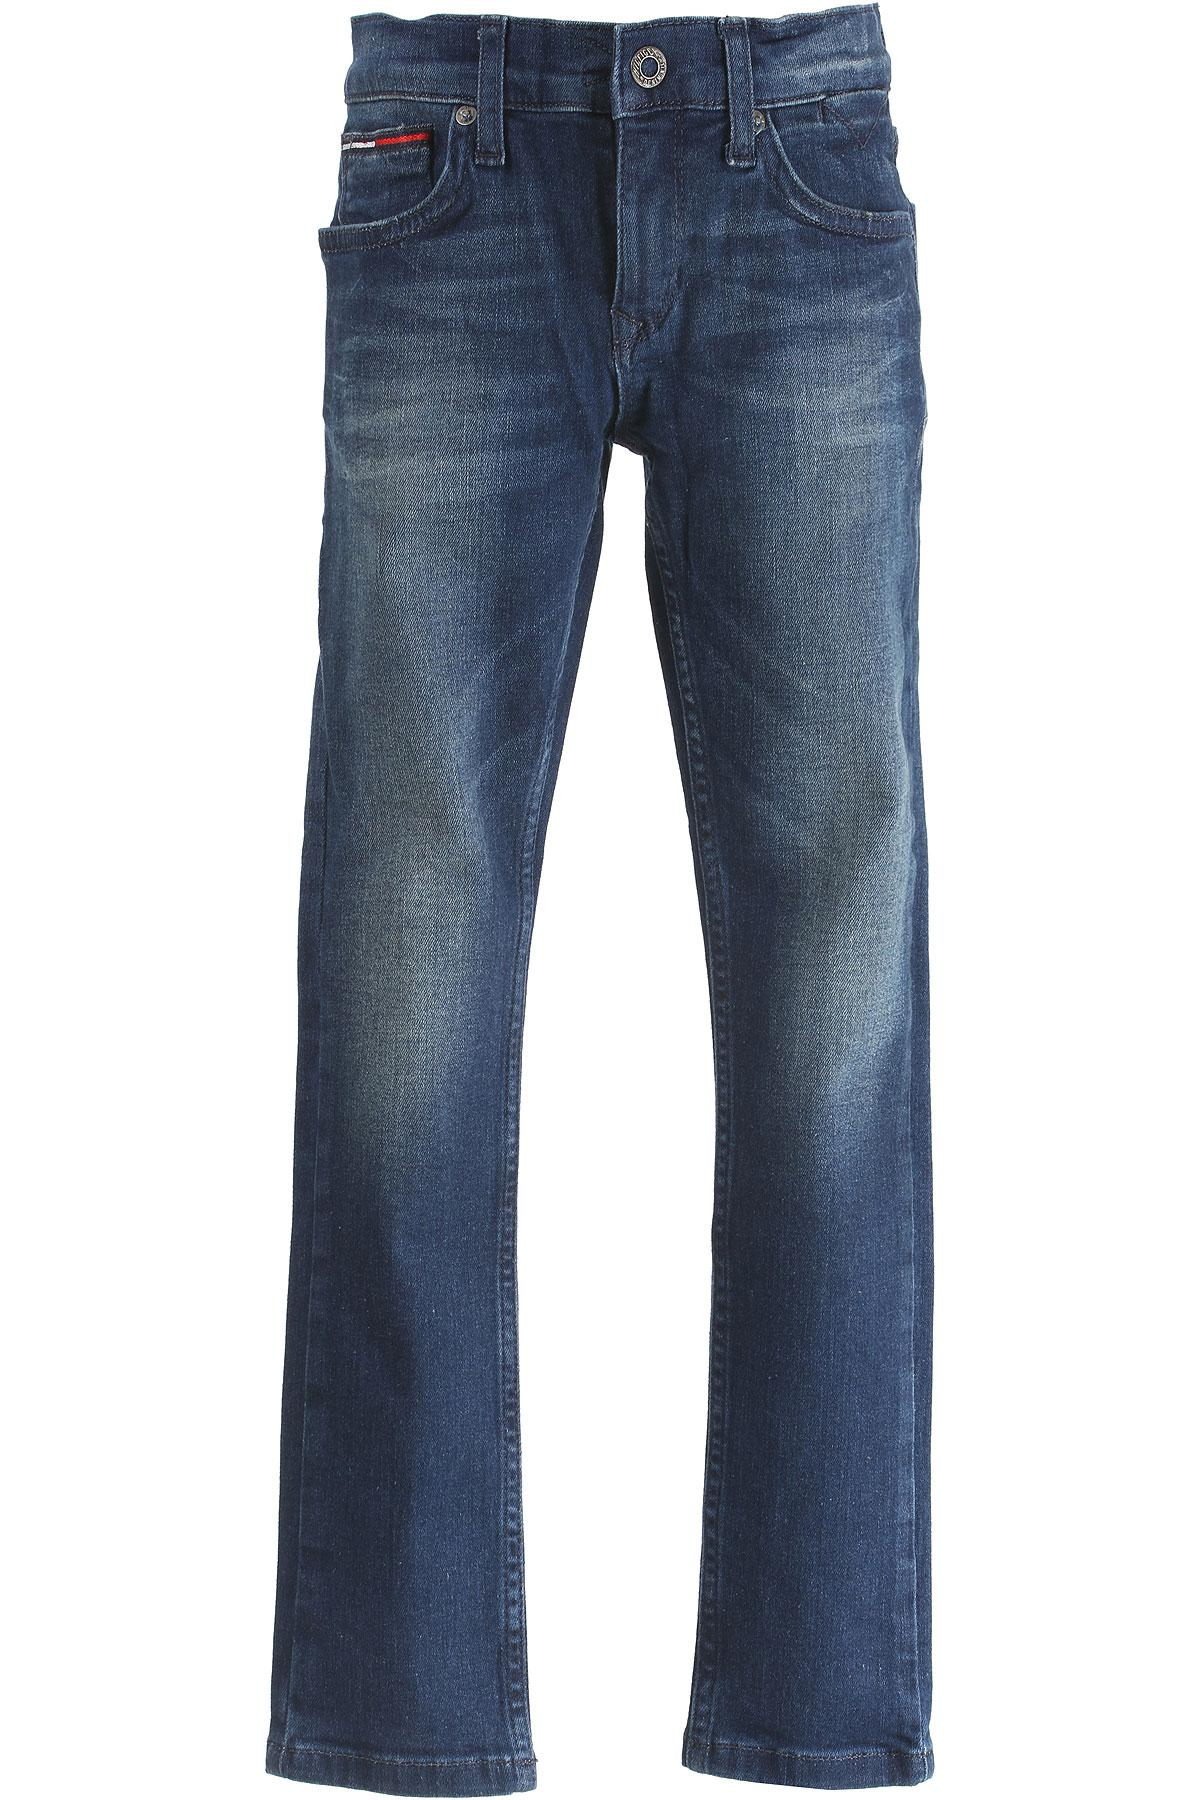 64f7d007 Lyst - Tommy Hilfiger Baby Jeans For Boys On Sale In Outlet in Blue ...